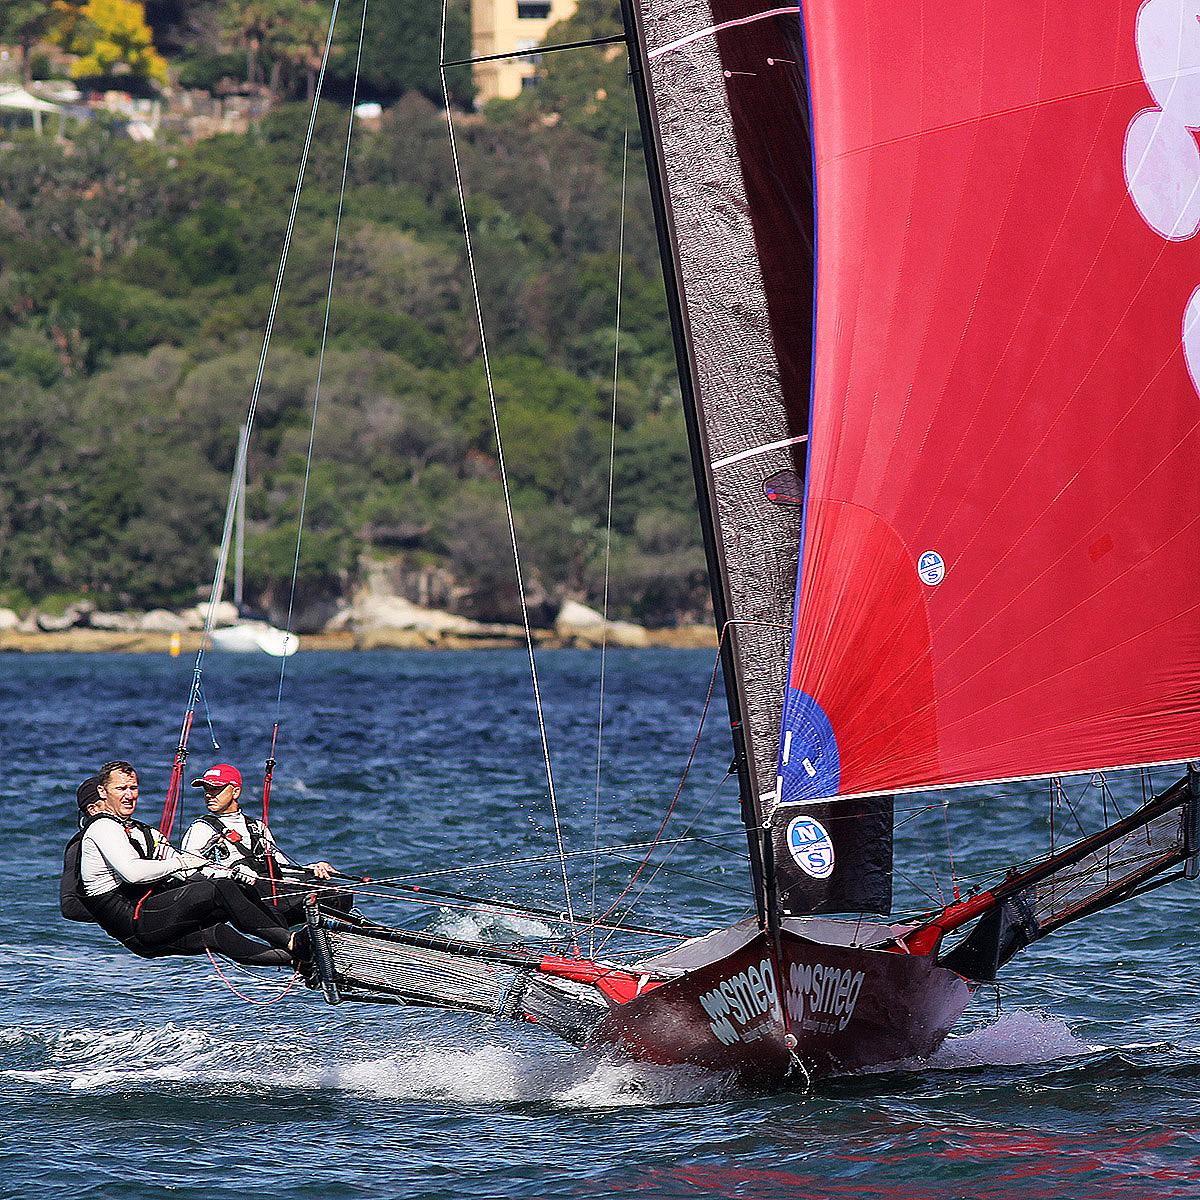 The champion Smeg crew head for home with a 48s lead over Finport. Photo Michael Crittenden.